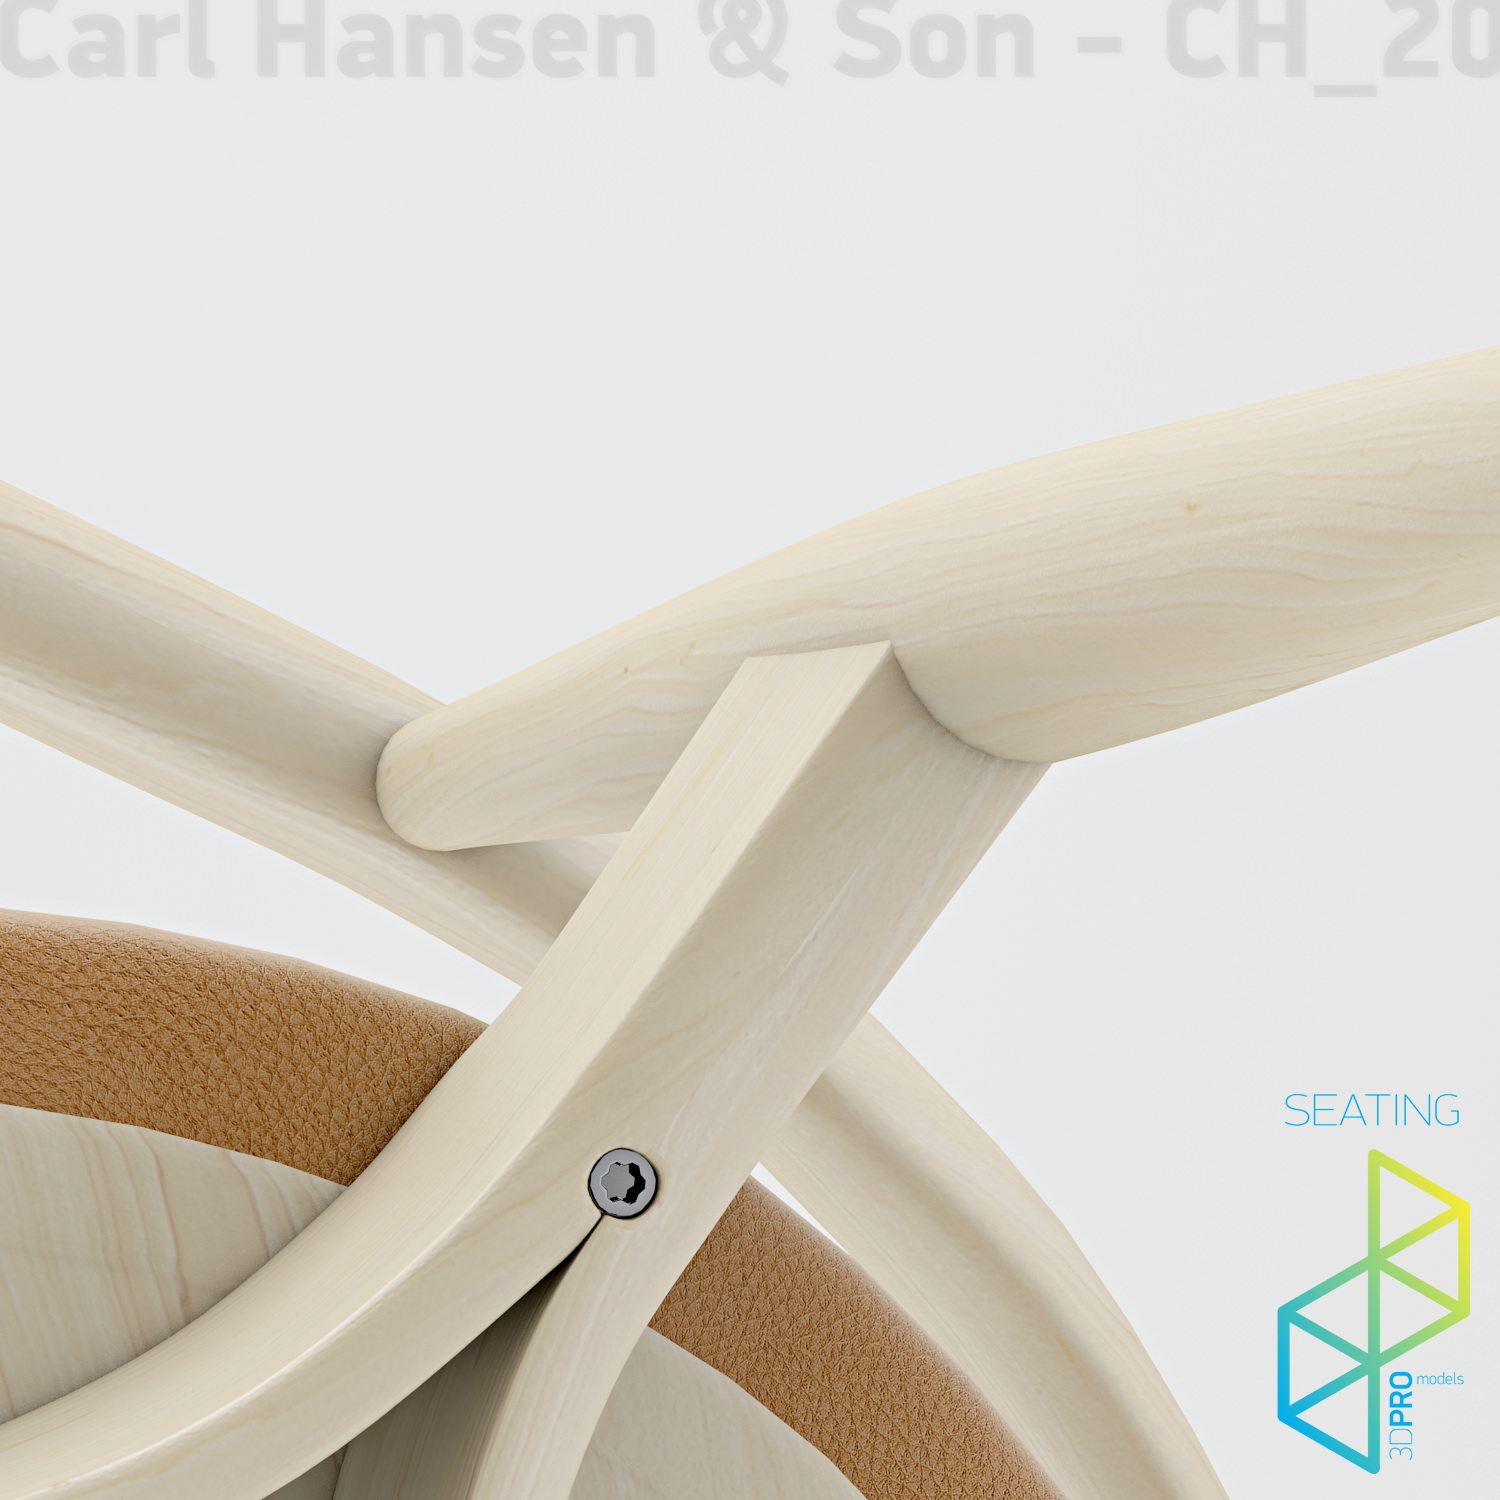 Carl Hansen Son CH20 Elbow chair 3D Model MAX OBJ 3DS  : carlhansensonch20elbowchair3dmodel3dsobjmax84fc90d8 faea 4eed ad20 01037d6ab5b3 from www.cgtrader.com size 1500 x 1500 jpeg 224kB